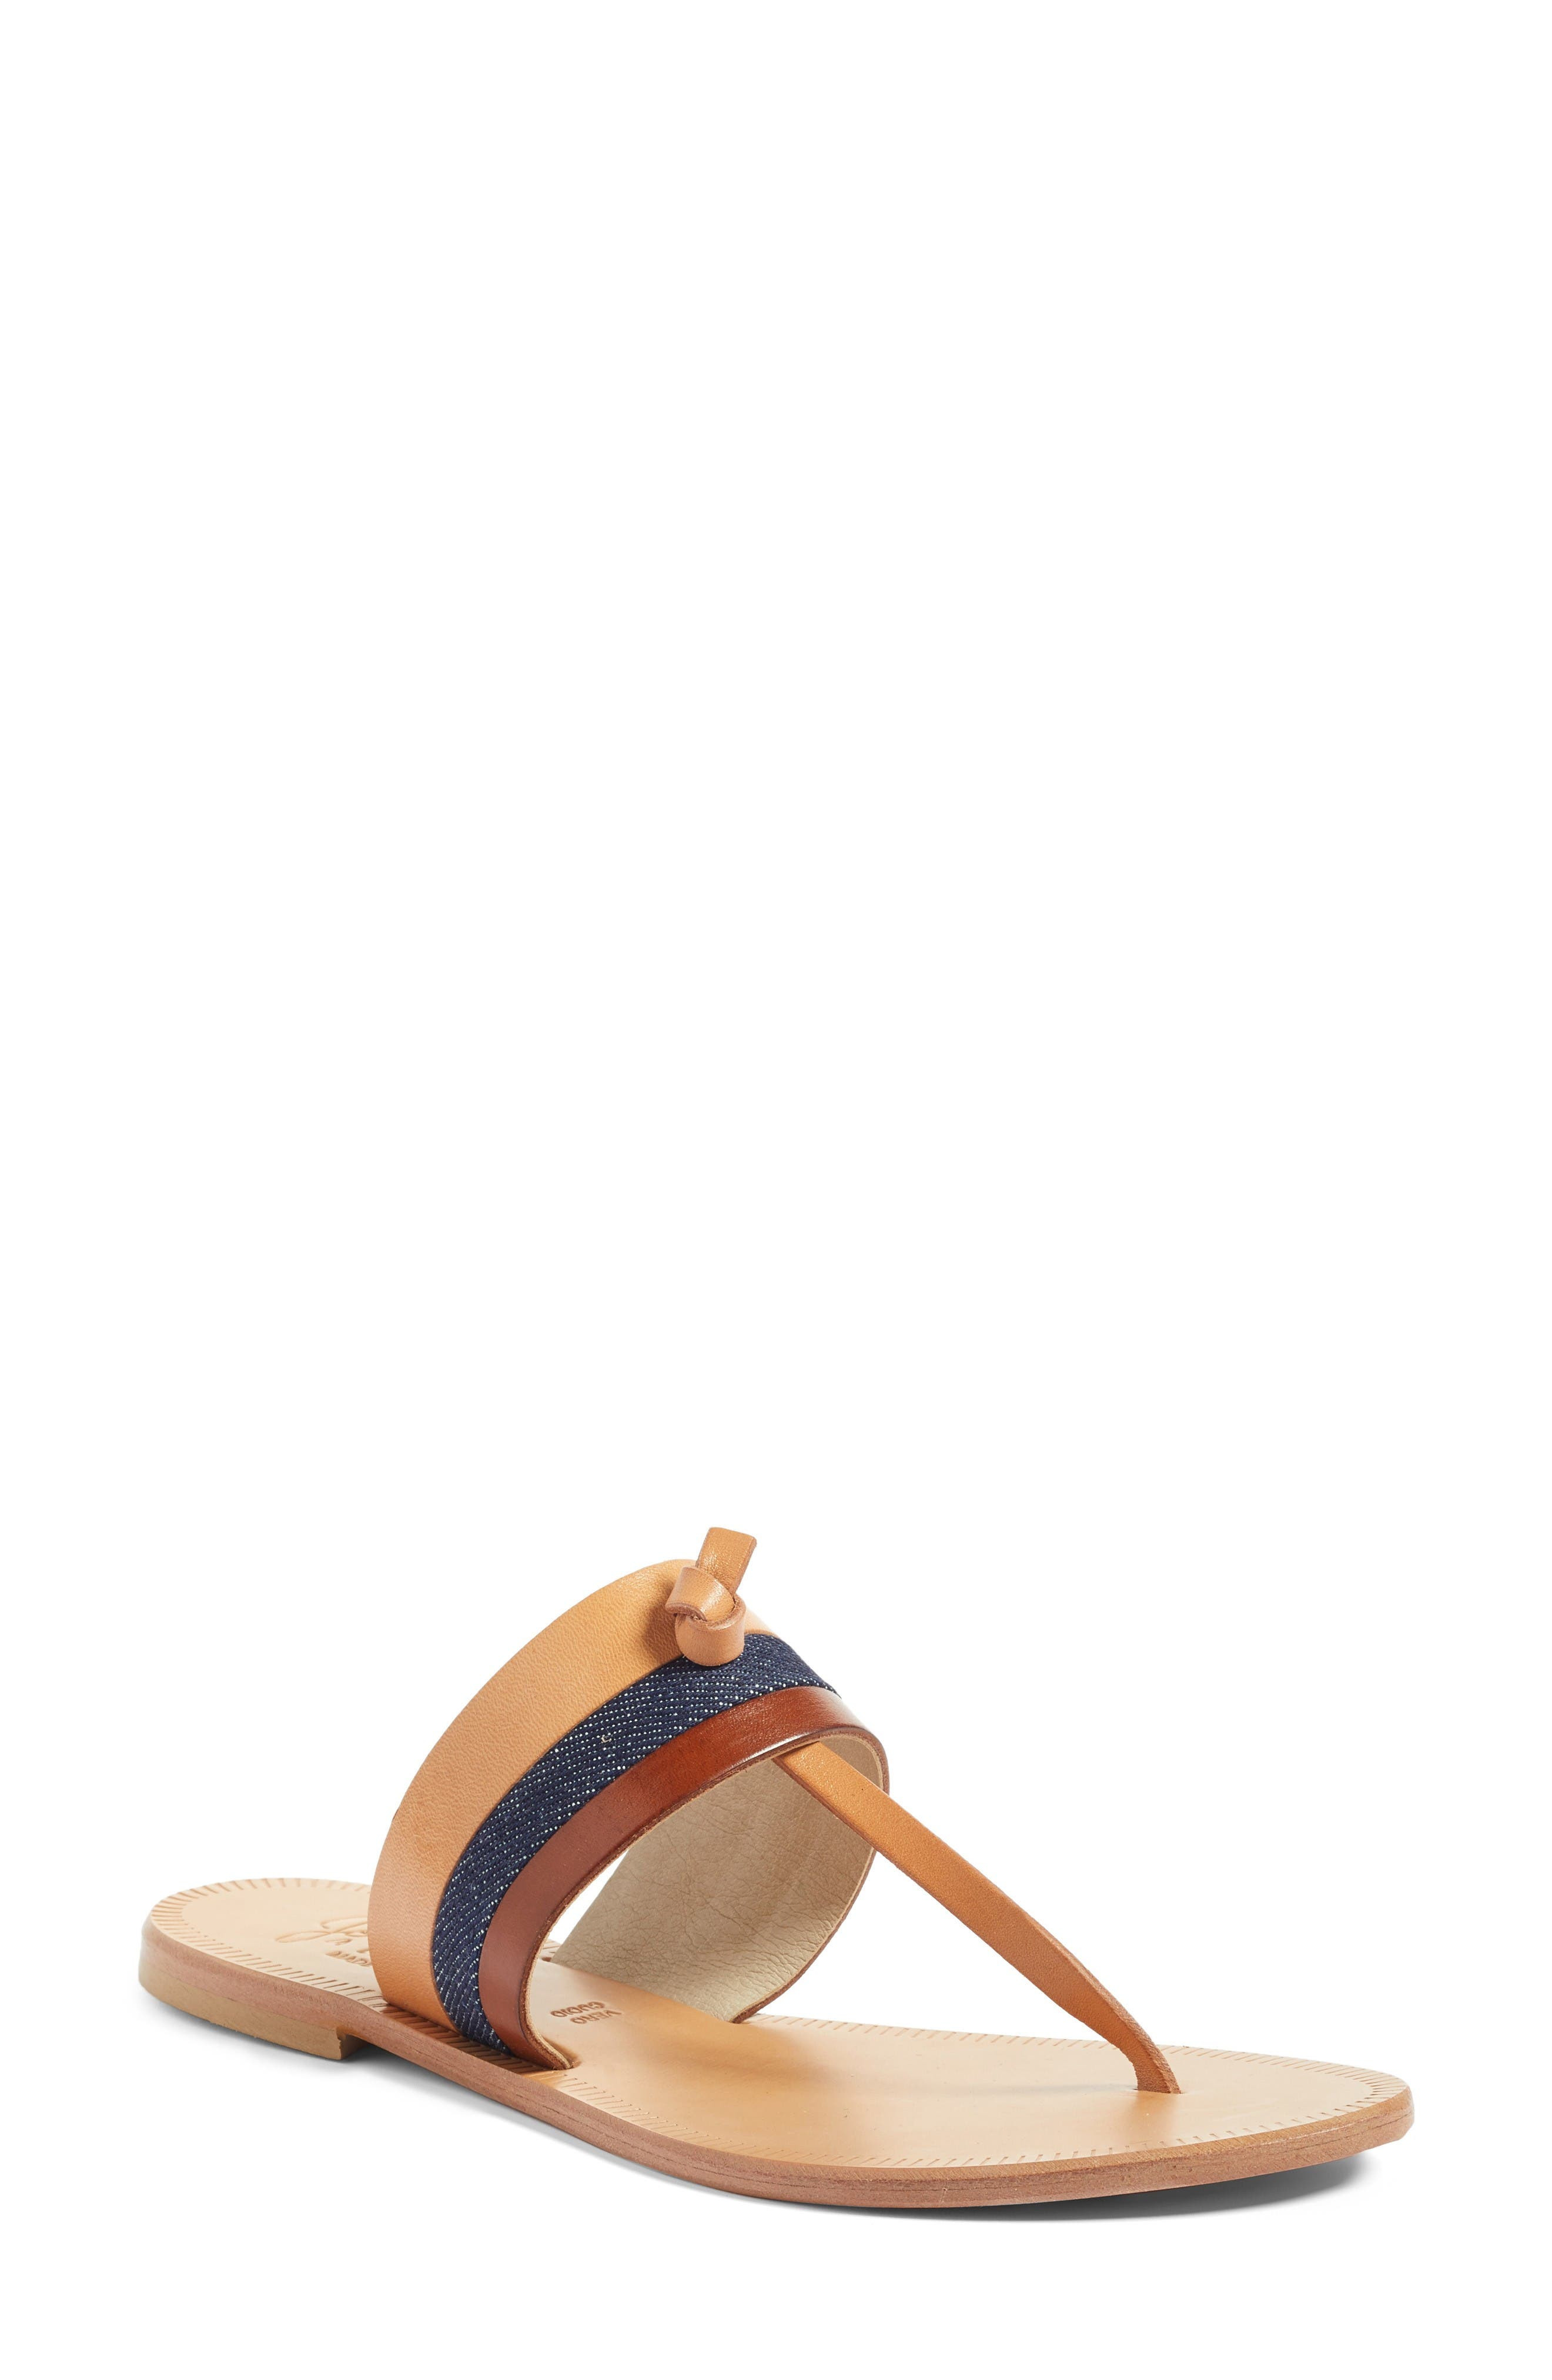 Alternate Image 1 Selected - Joie Naima Flip Flop (Women)